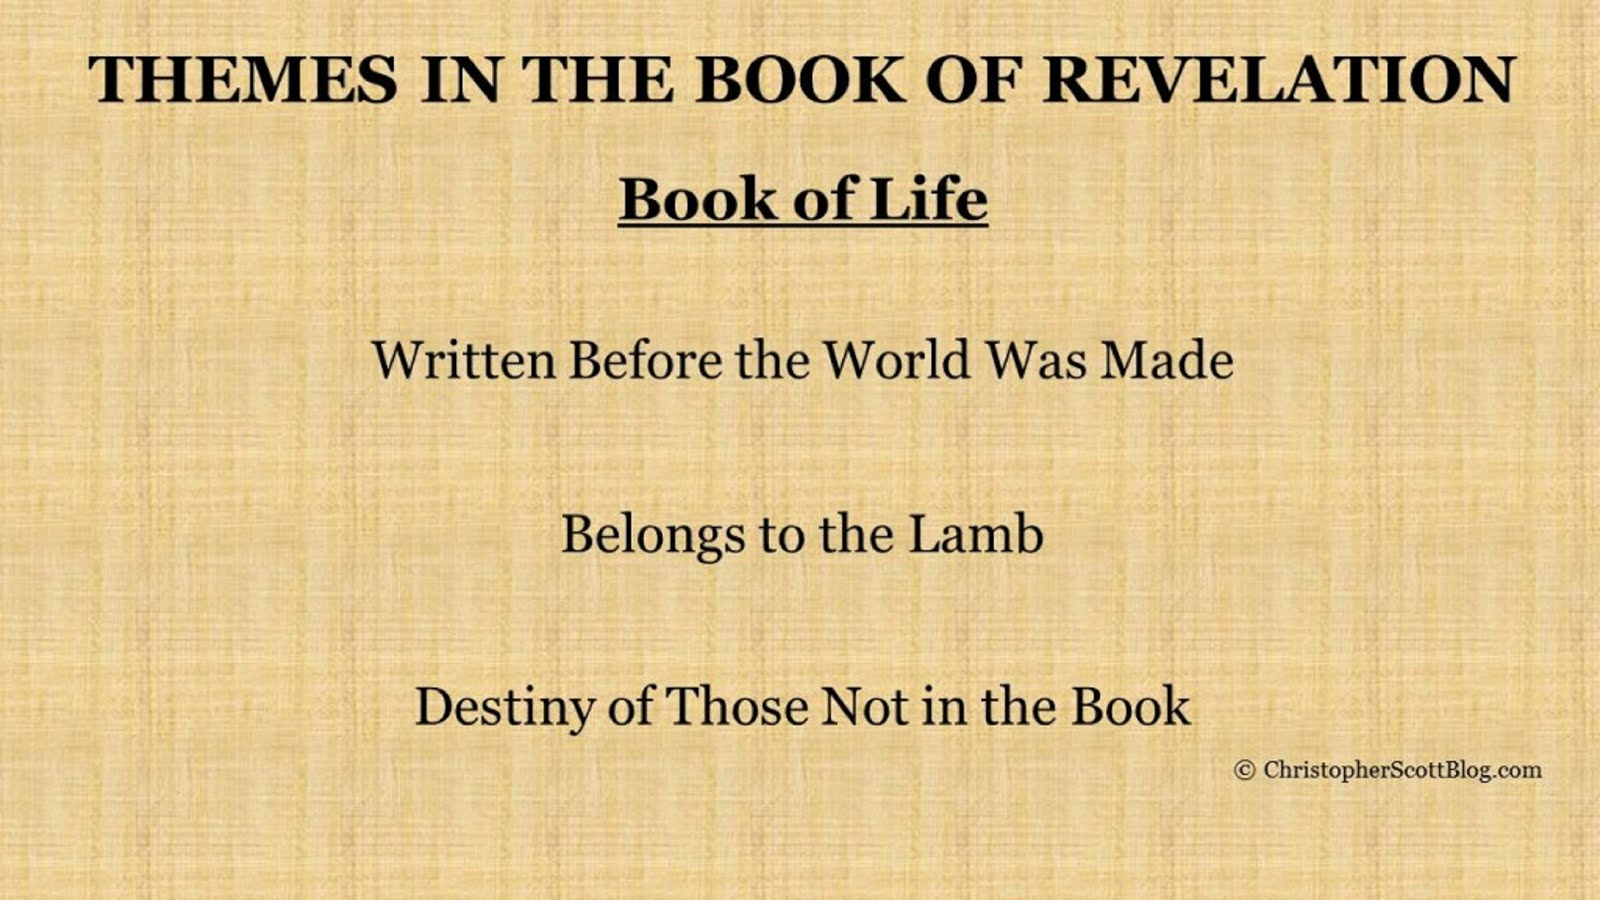 THE BOOK OF LIFE WAS WRITTEN BEFORE THE FOUNDATION OF THE WORLD - AND NOT ADDED AS A WRITTEN IN